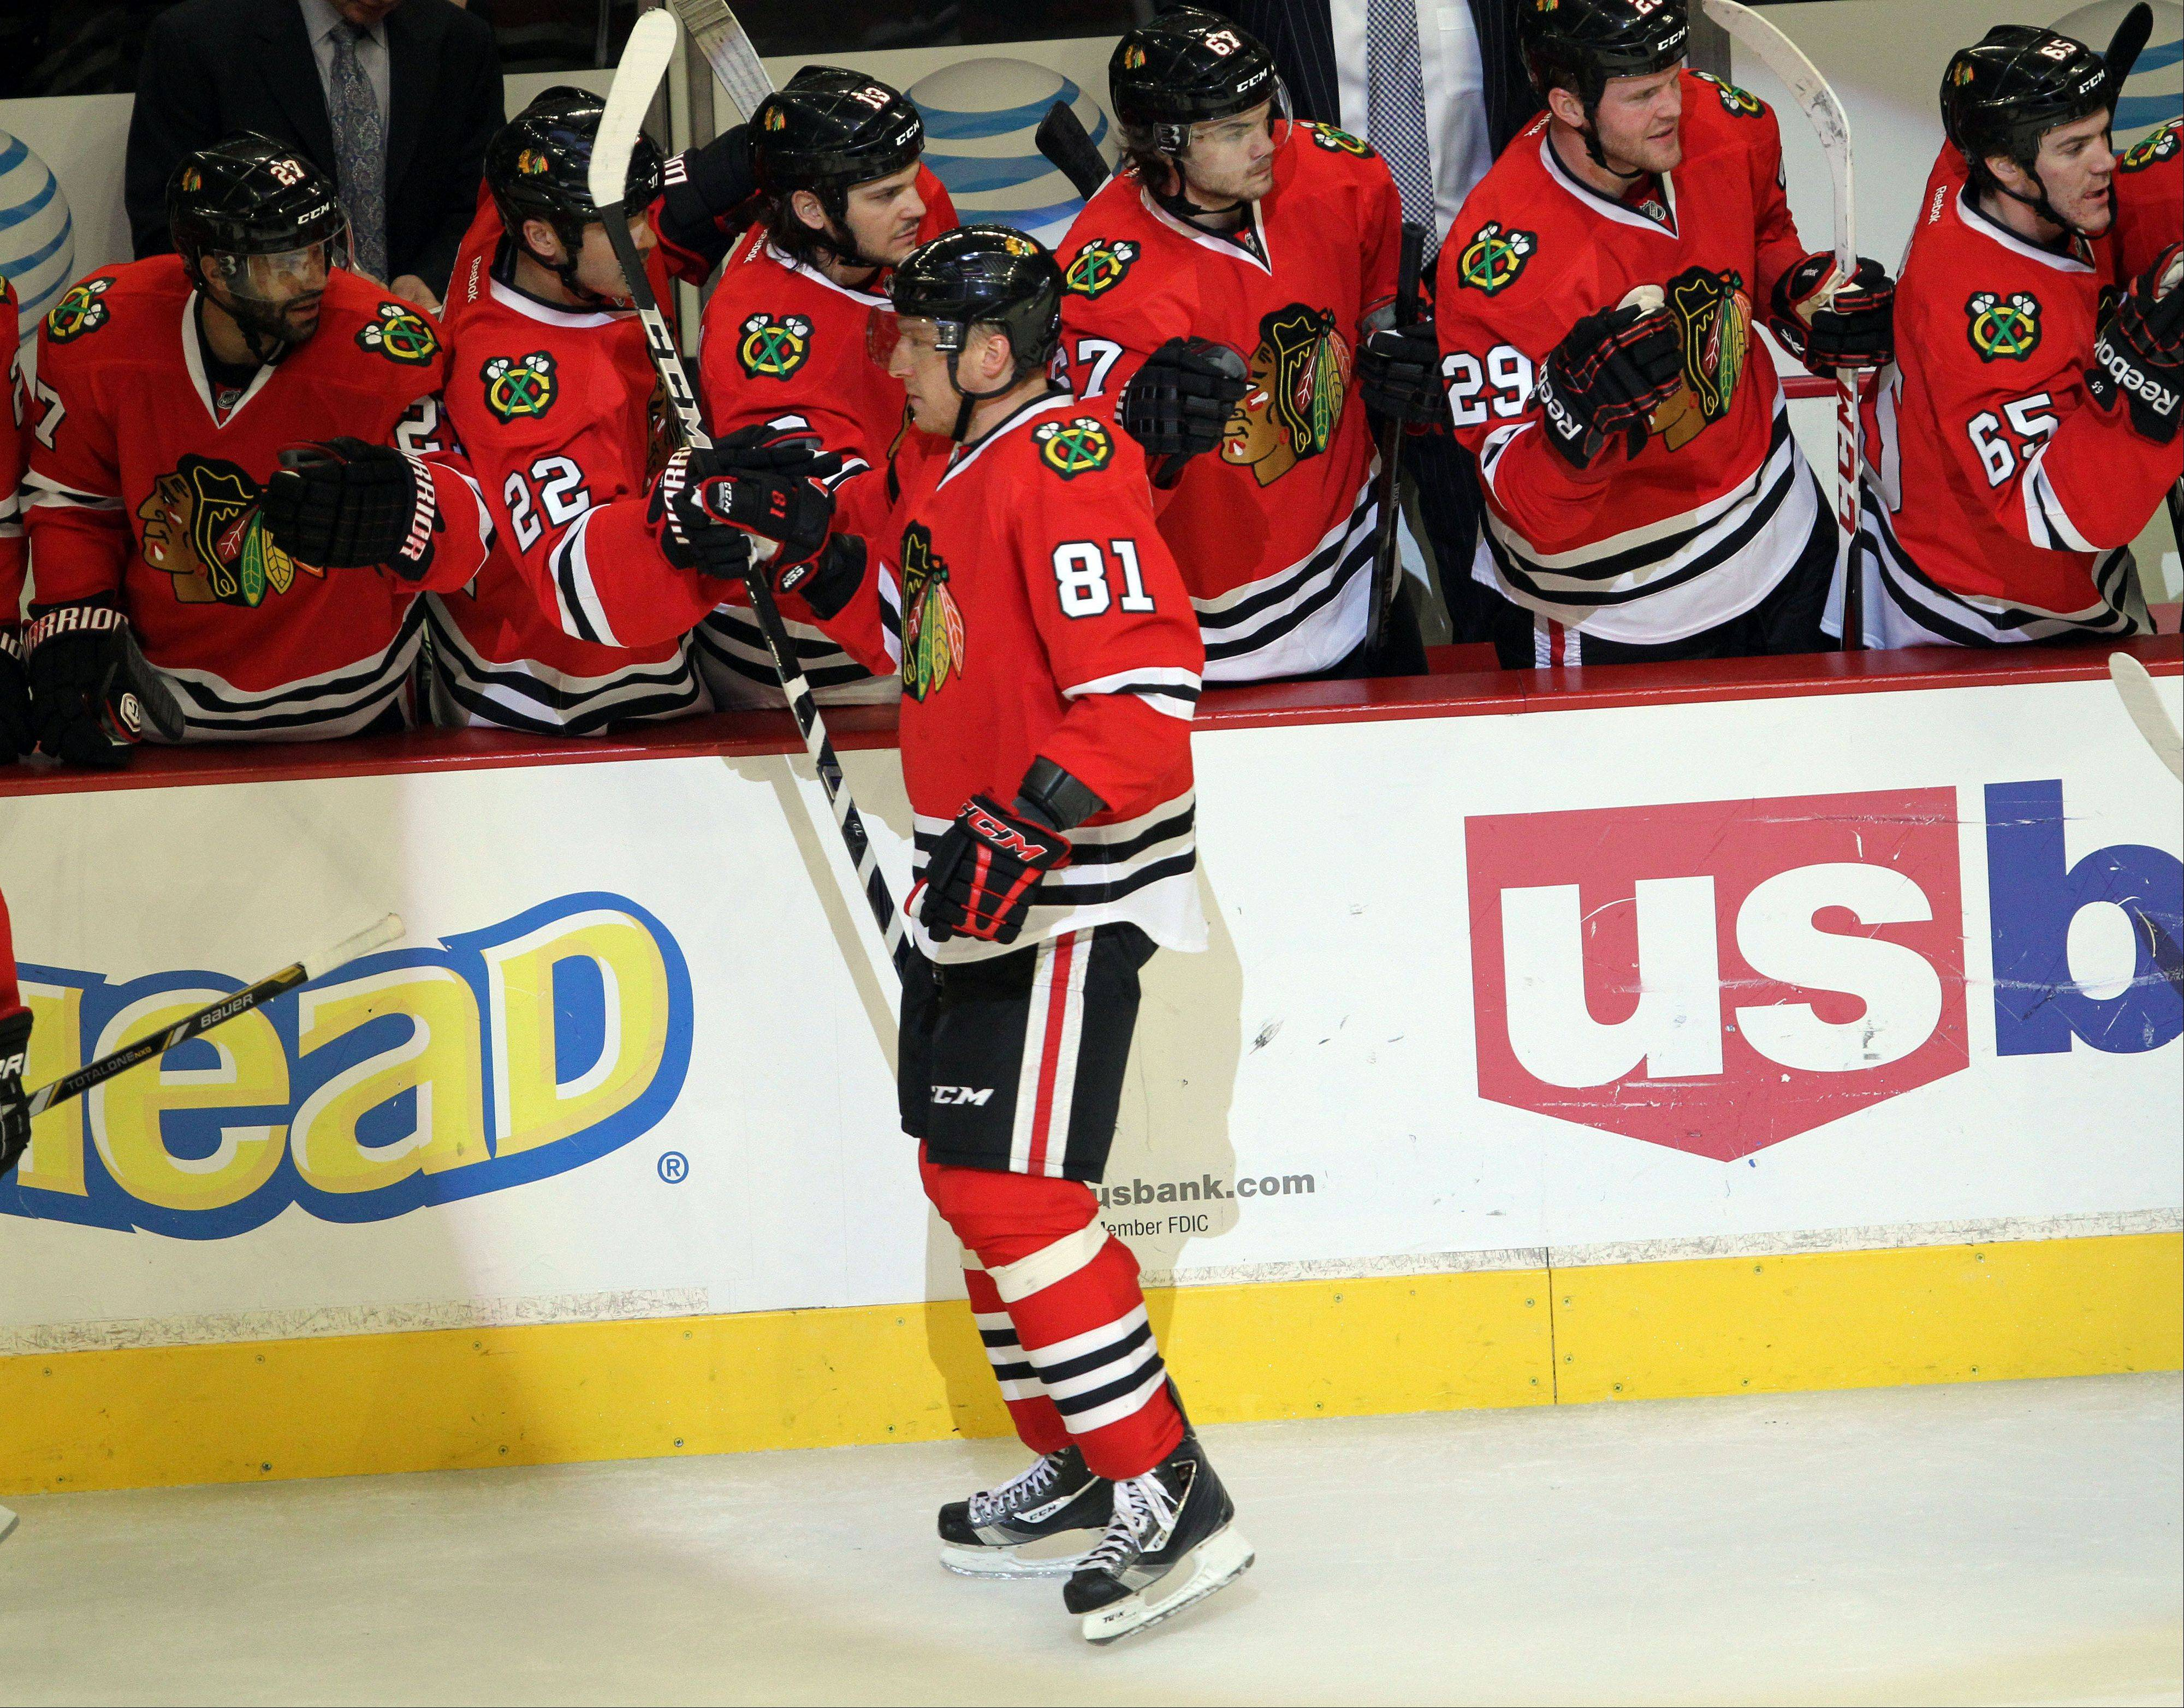 Chicago Blackhawks right wing Marian Hossa celebrates with the bench after a 2nd period goal during their game Sunday night at the United Center in Chicago.